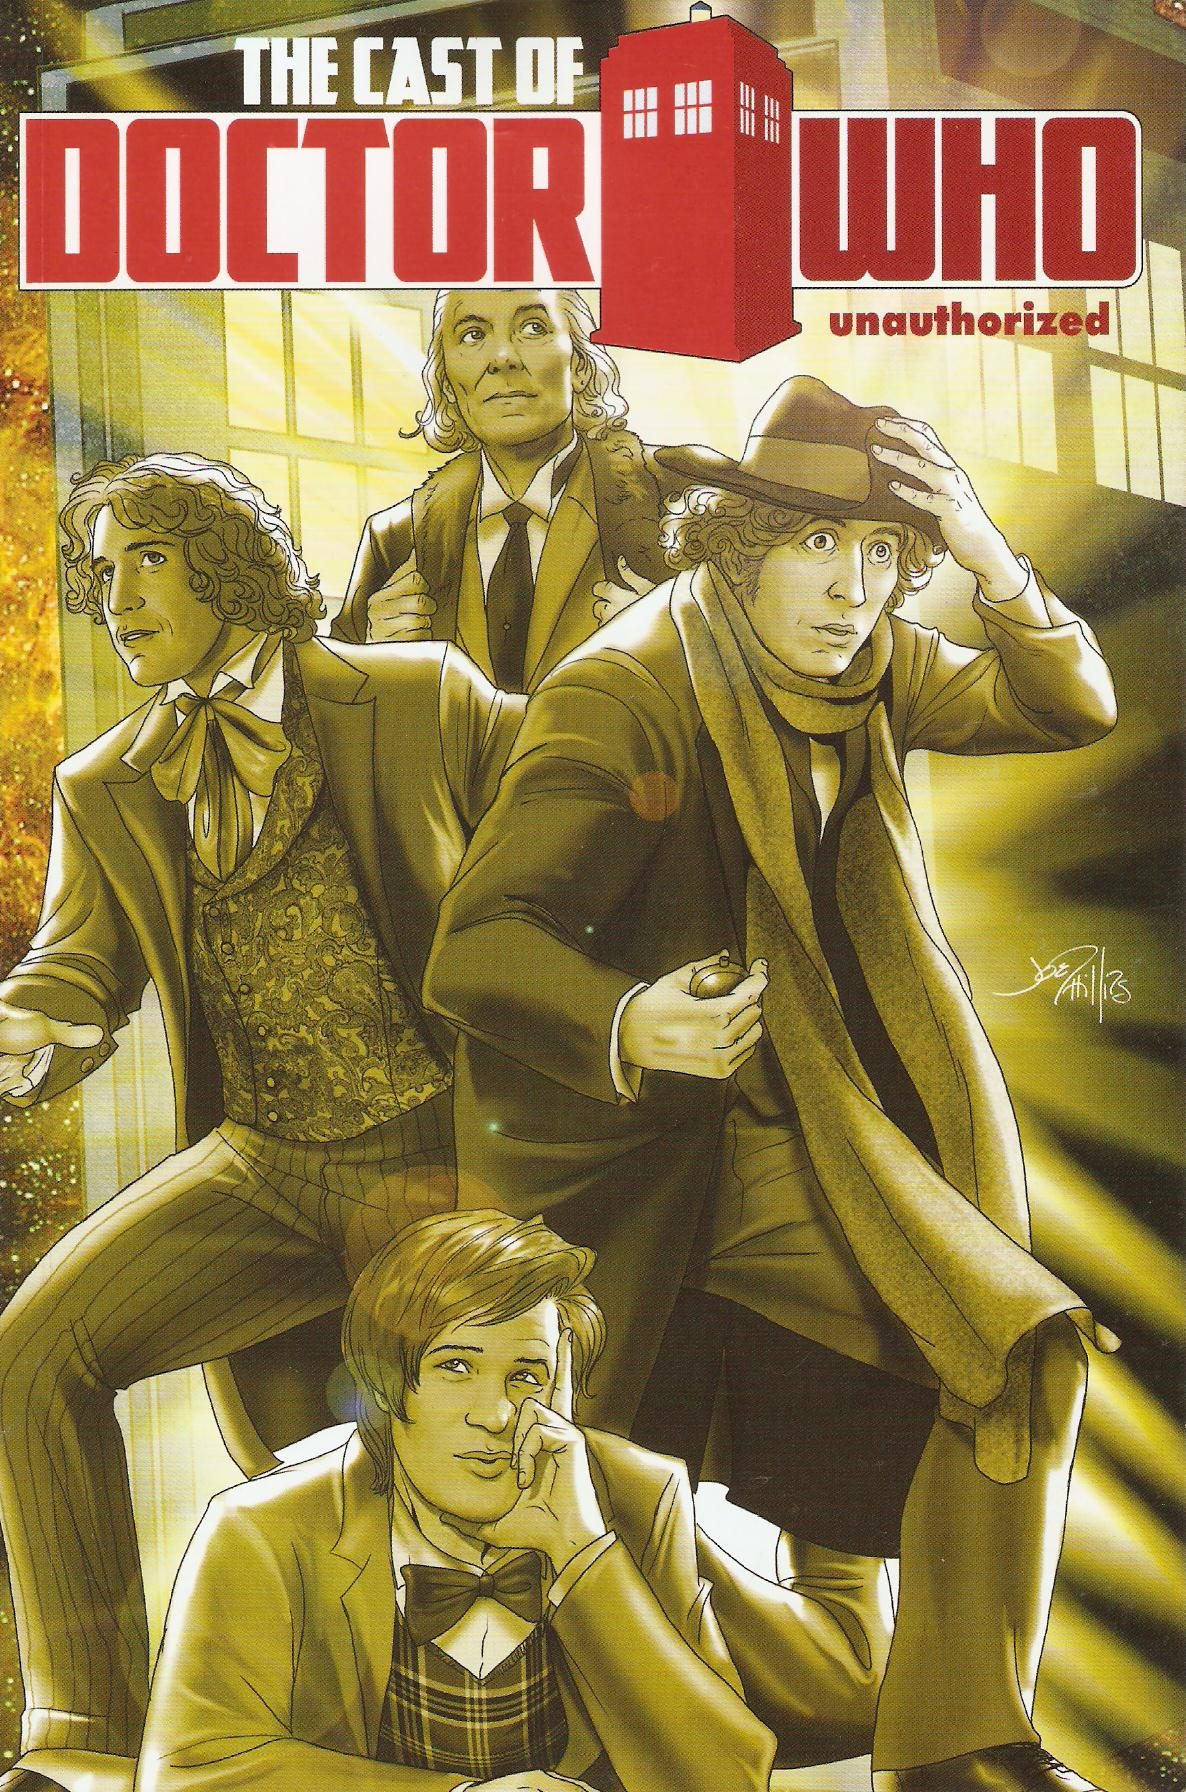 Cast of doctor who graphic novel